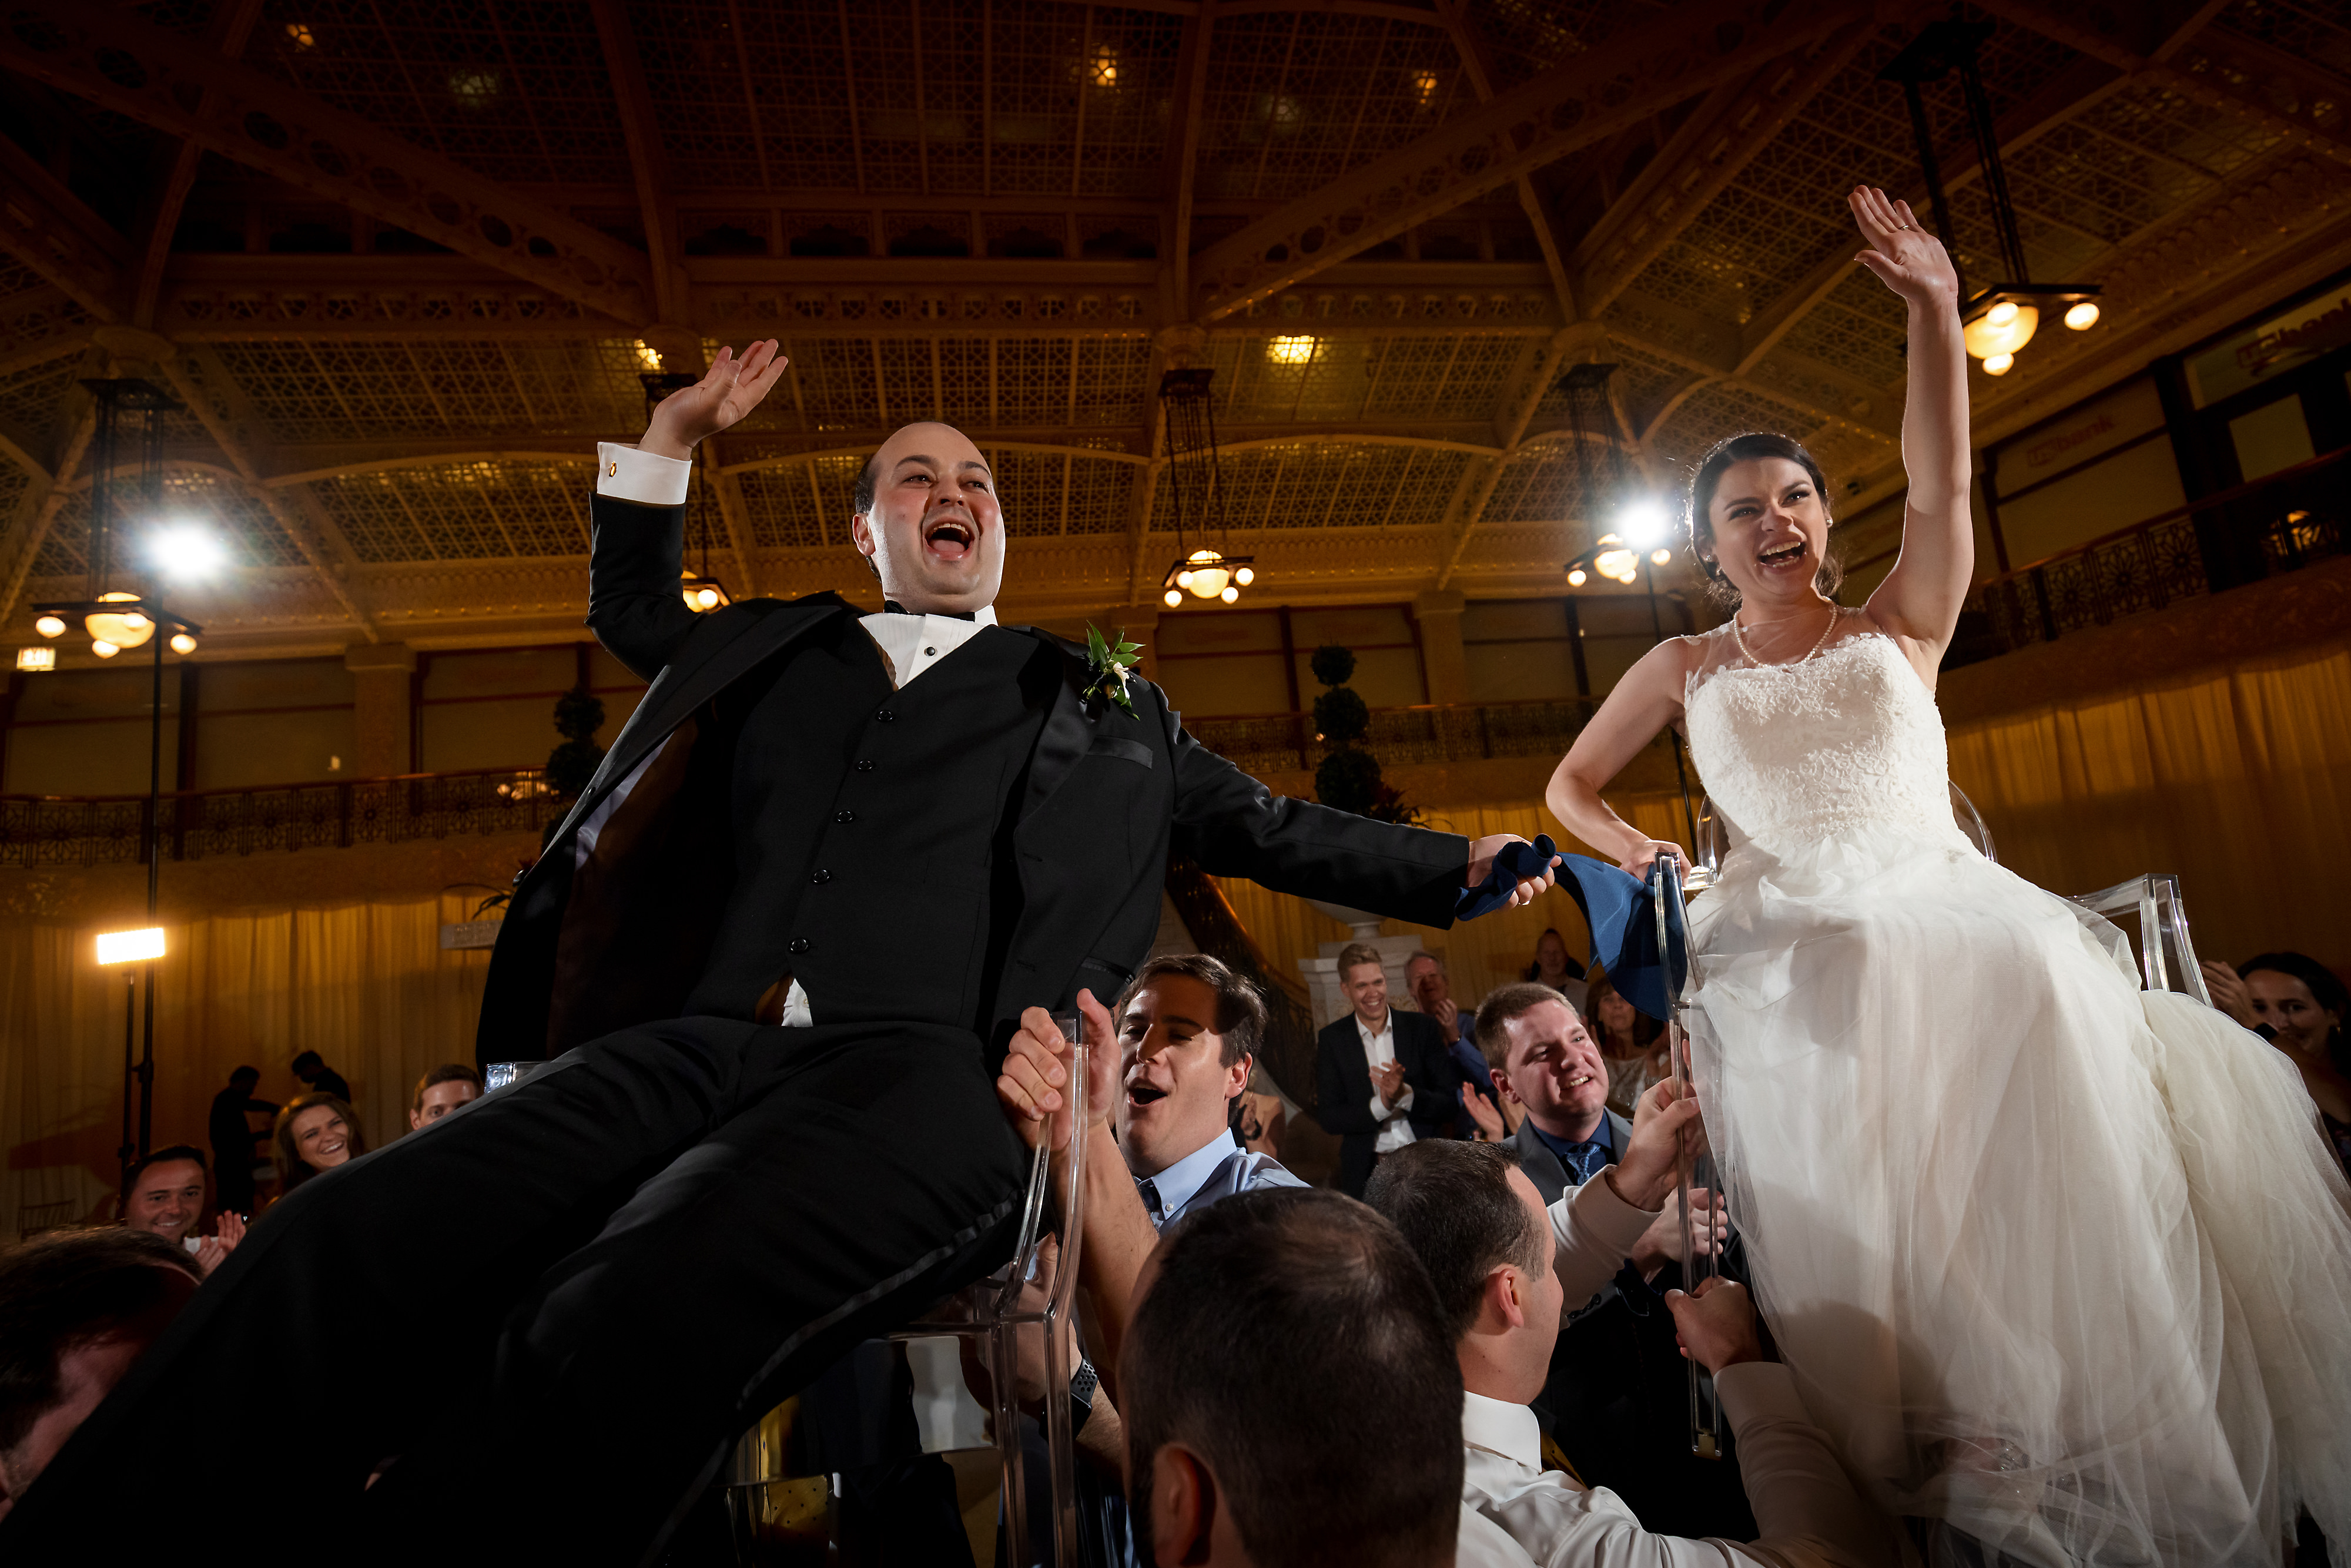 Bride and groom are lifted in chairs by guests during Hora dance of wedding reception at the Rookery Building in Chicago